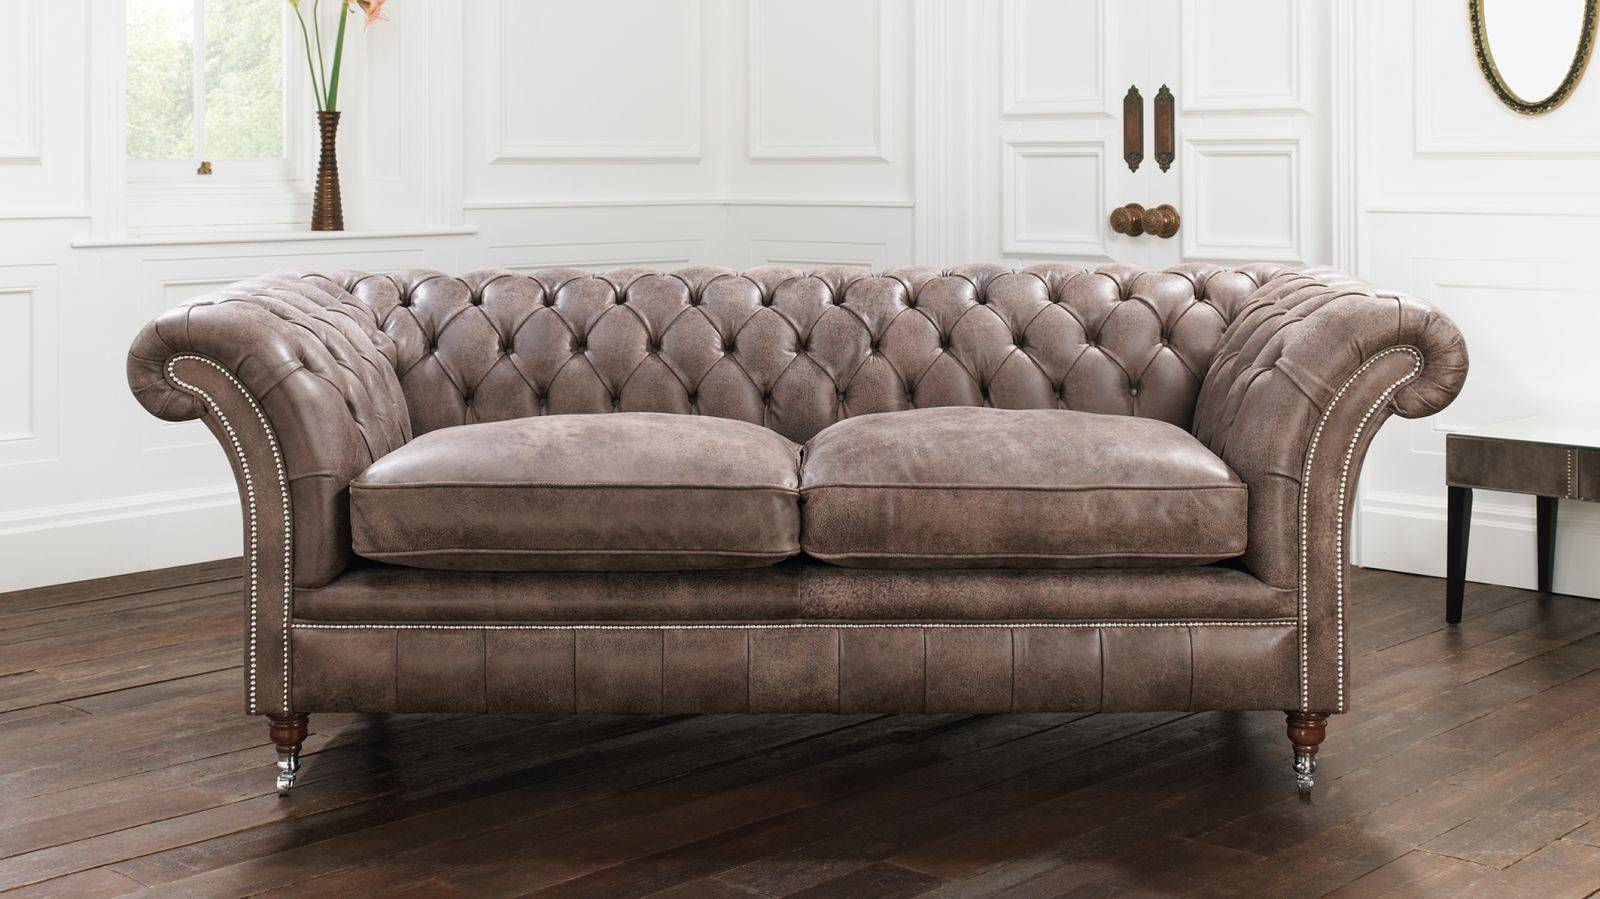 Storage Canterbury Leather Chesterfield Style 3 Seater Sofa throughout Canterbury Leather Sofas (Image 30 of 30)